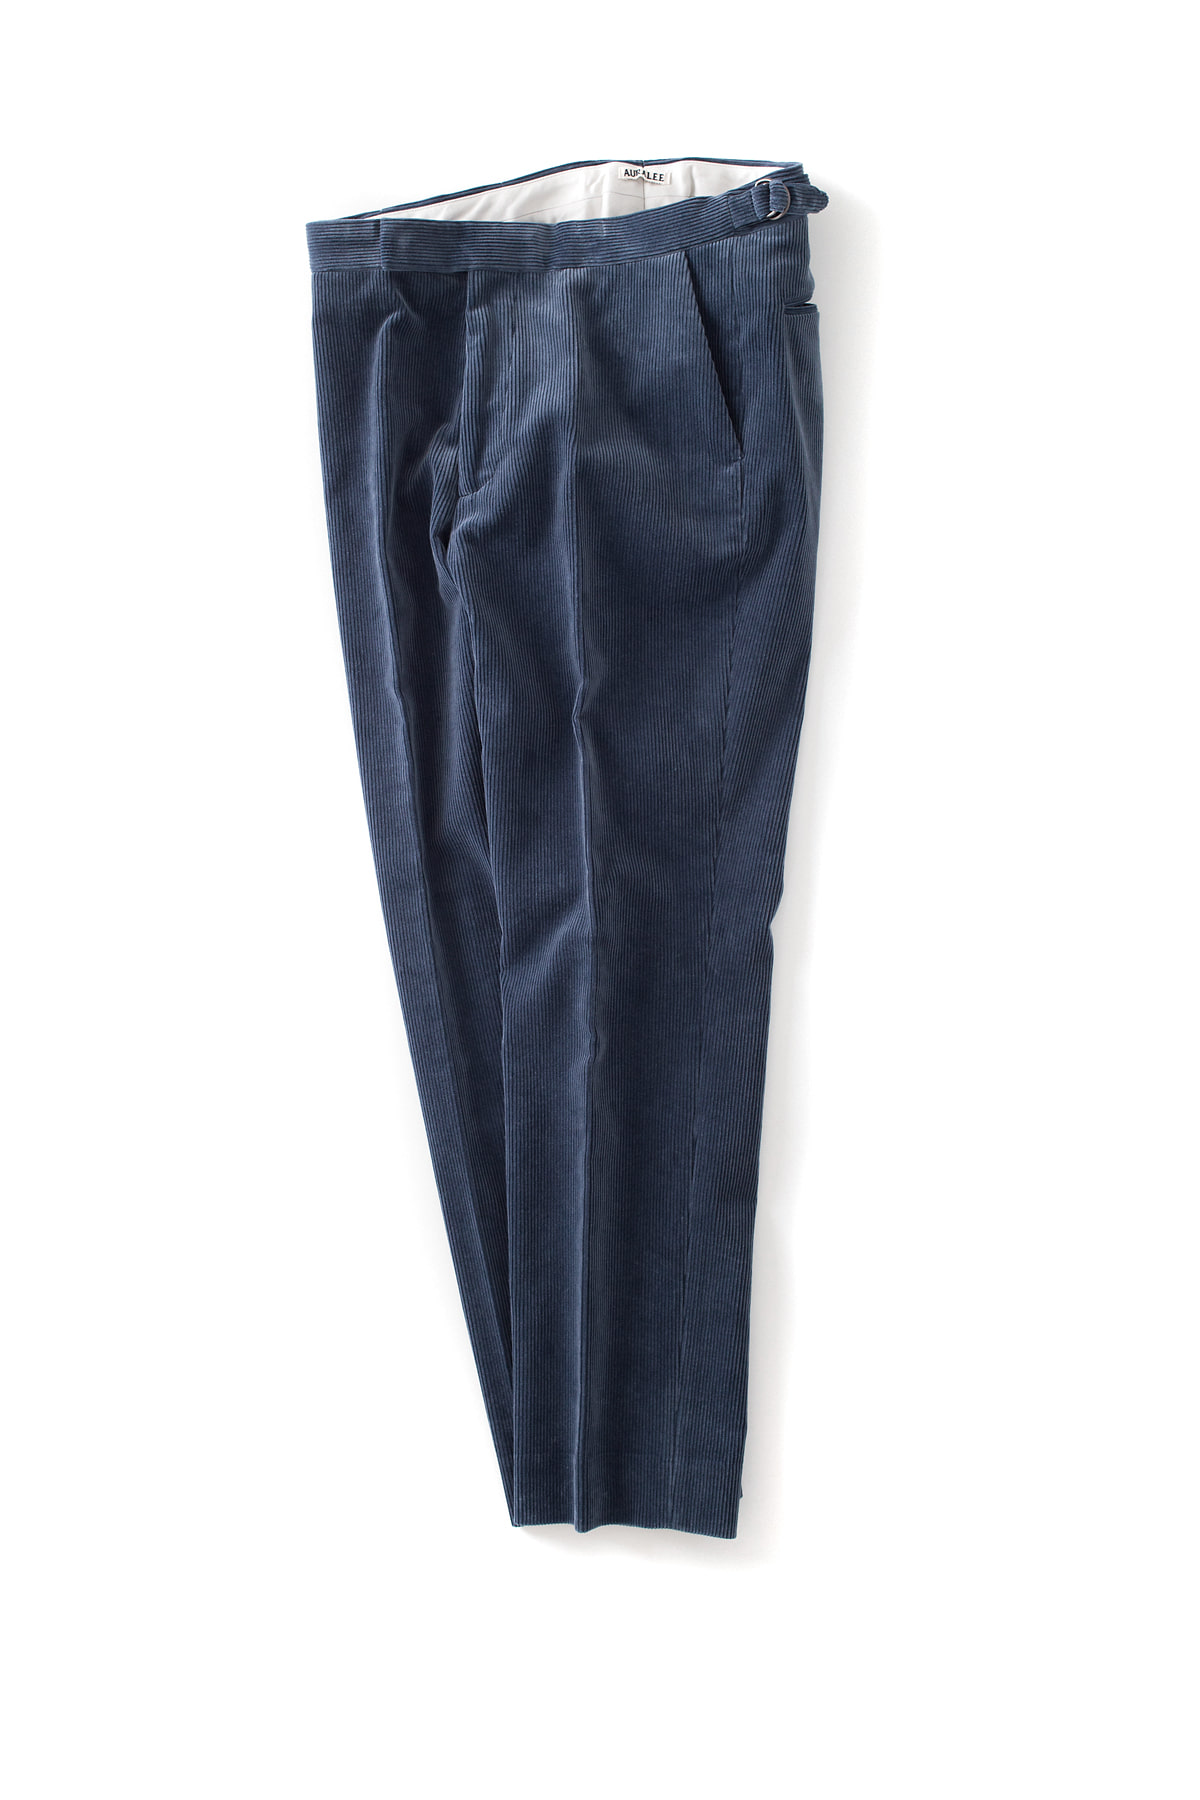 Auralee : Washed Corduroy Tapered Slacks (Dark Blue)